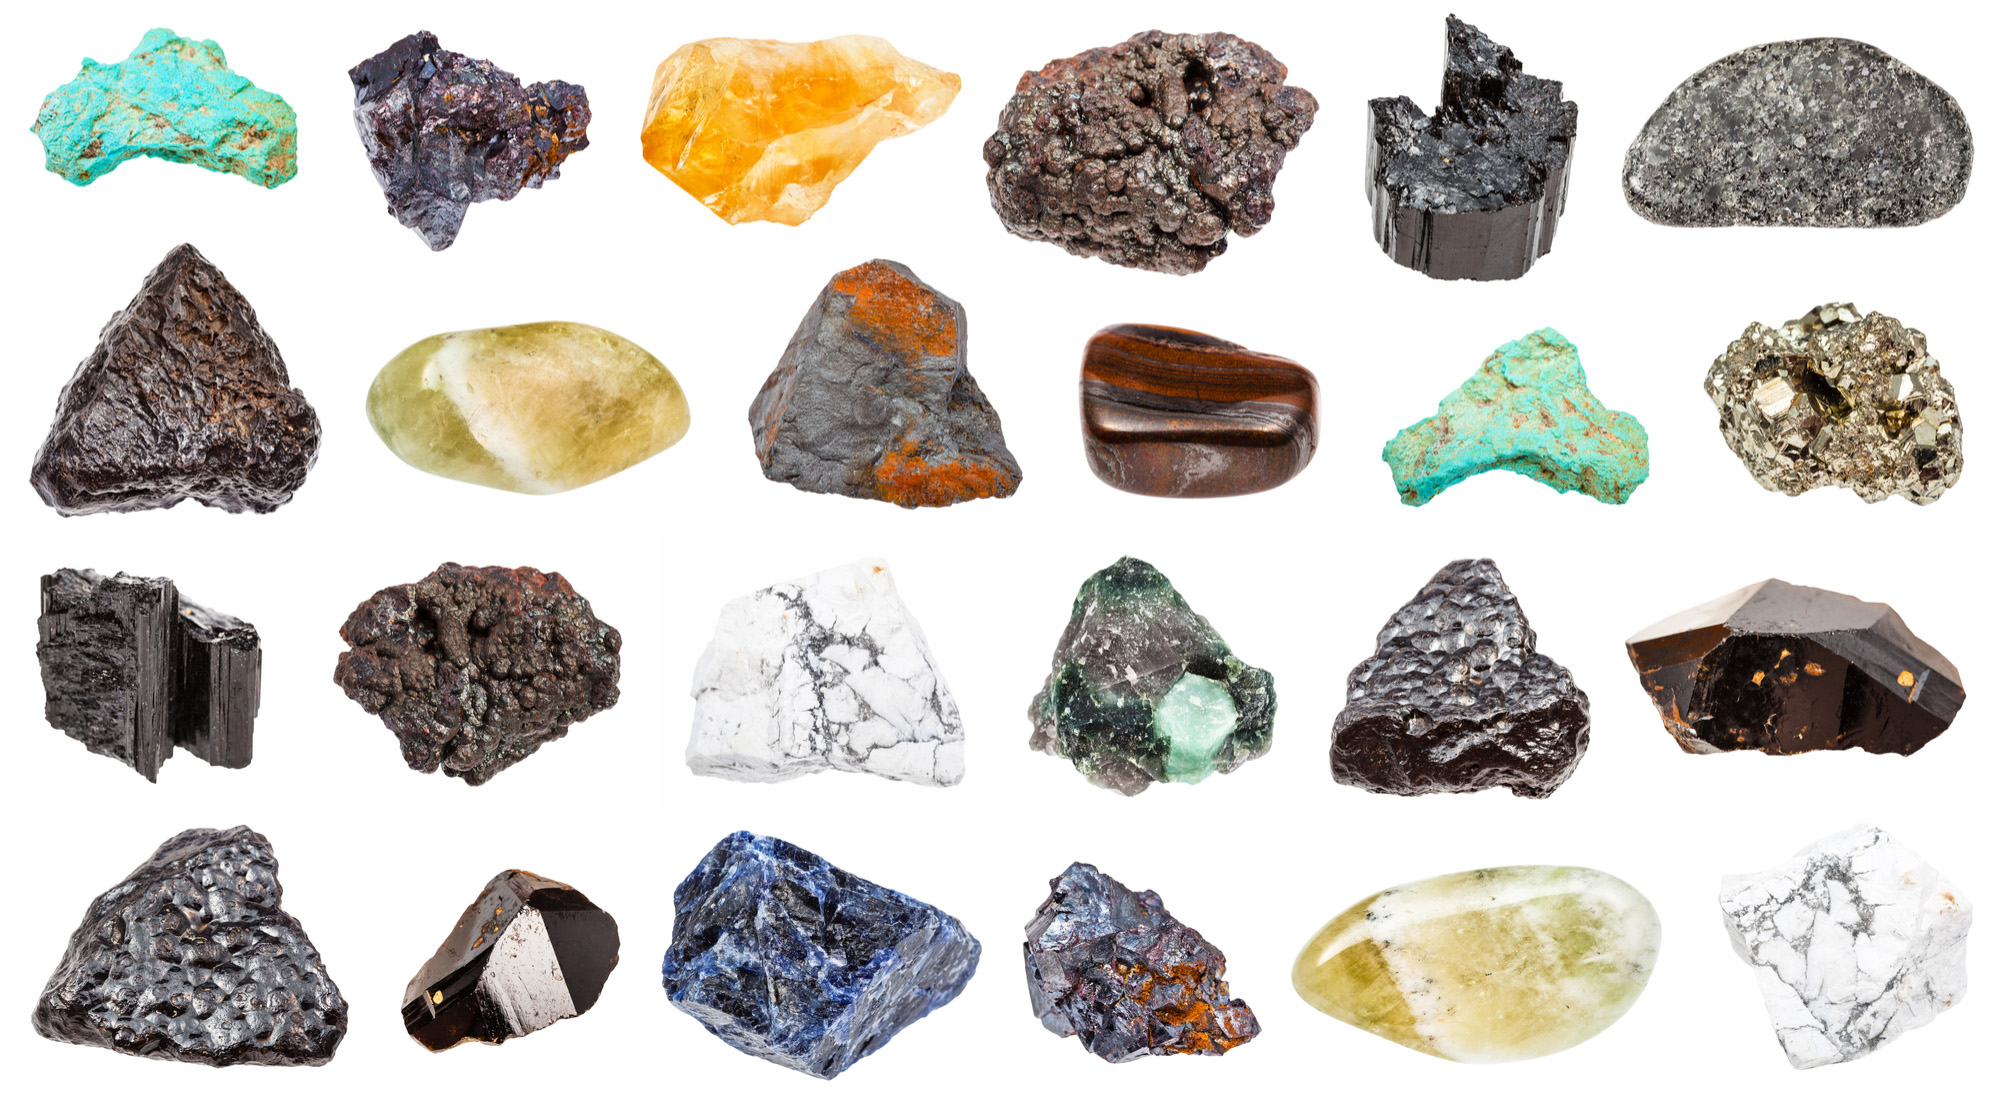 Collection of various minerals-72 ppi